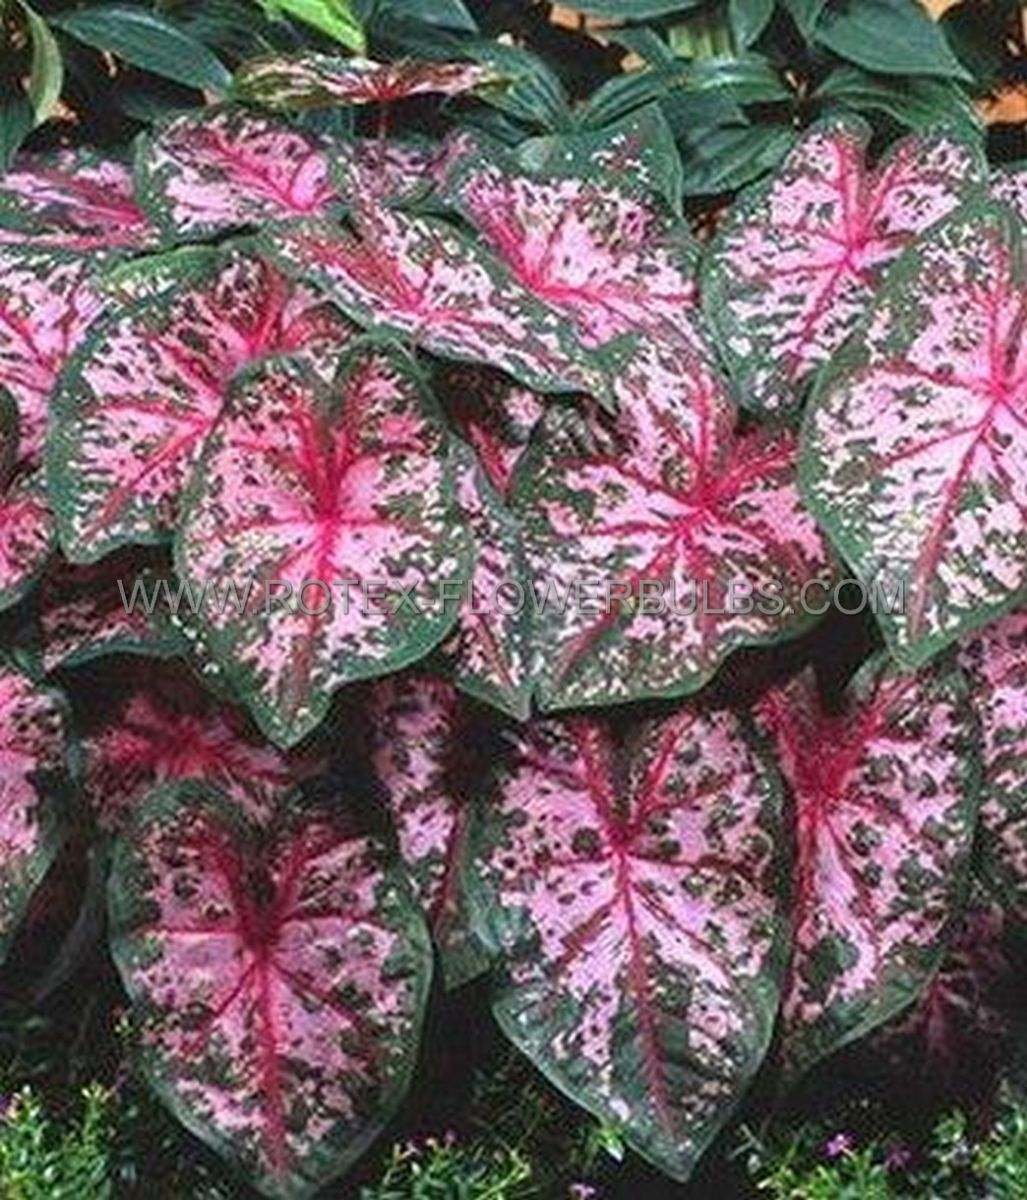 caladium fancy leaved carolyn whorton no1 200 pcarton